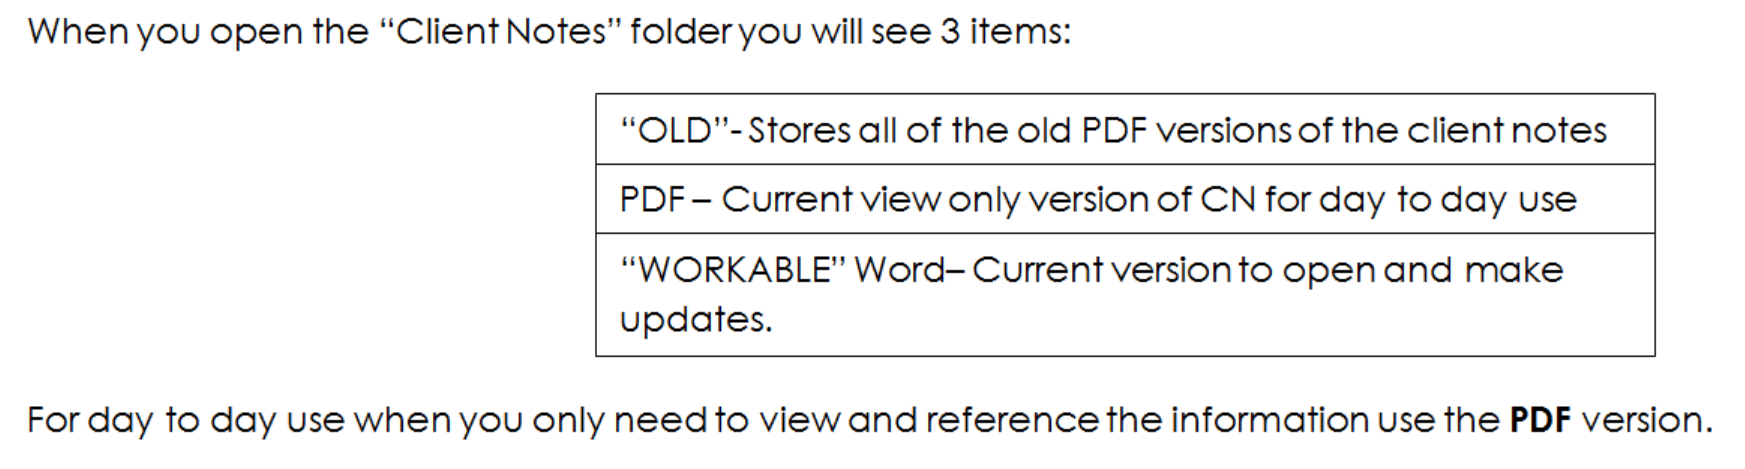 Update client notes 2.PNG